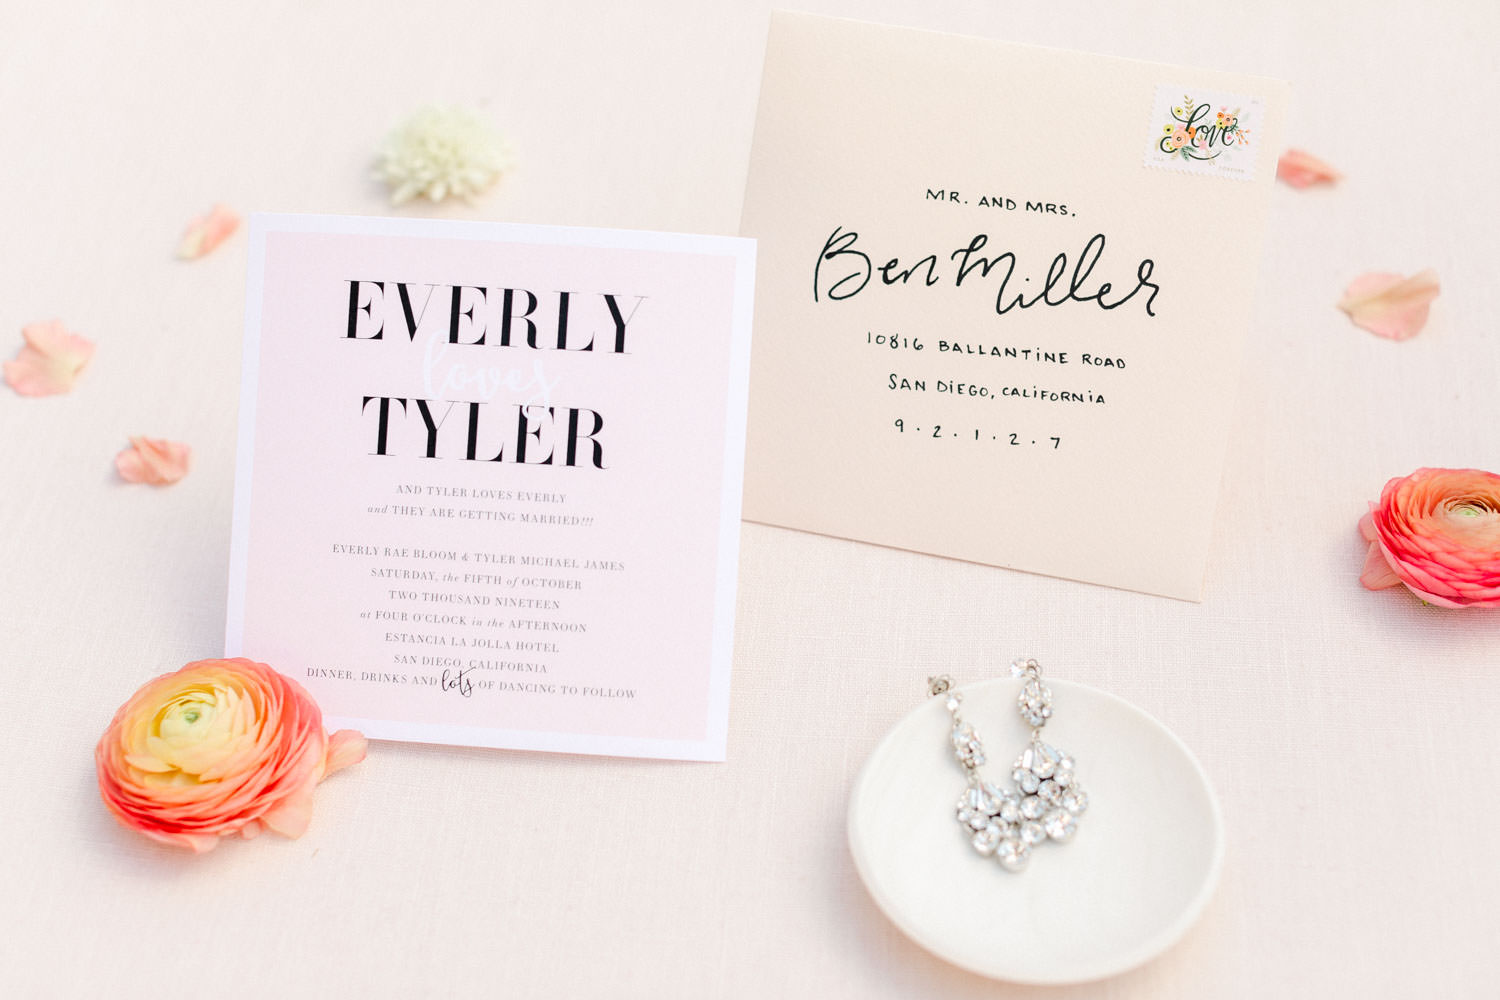 Pink and ivory modern wedding invitation suite with bold fonts and name calligraphy on envelope, Wedding at Estancia La Jolla